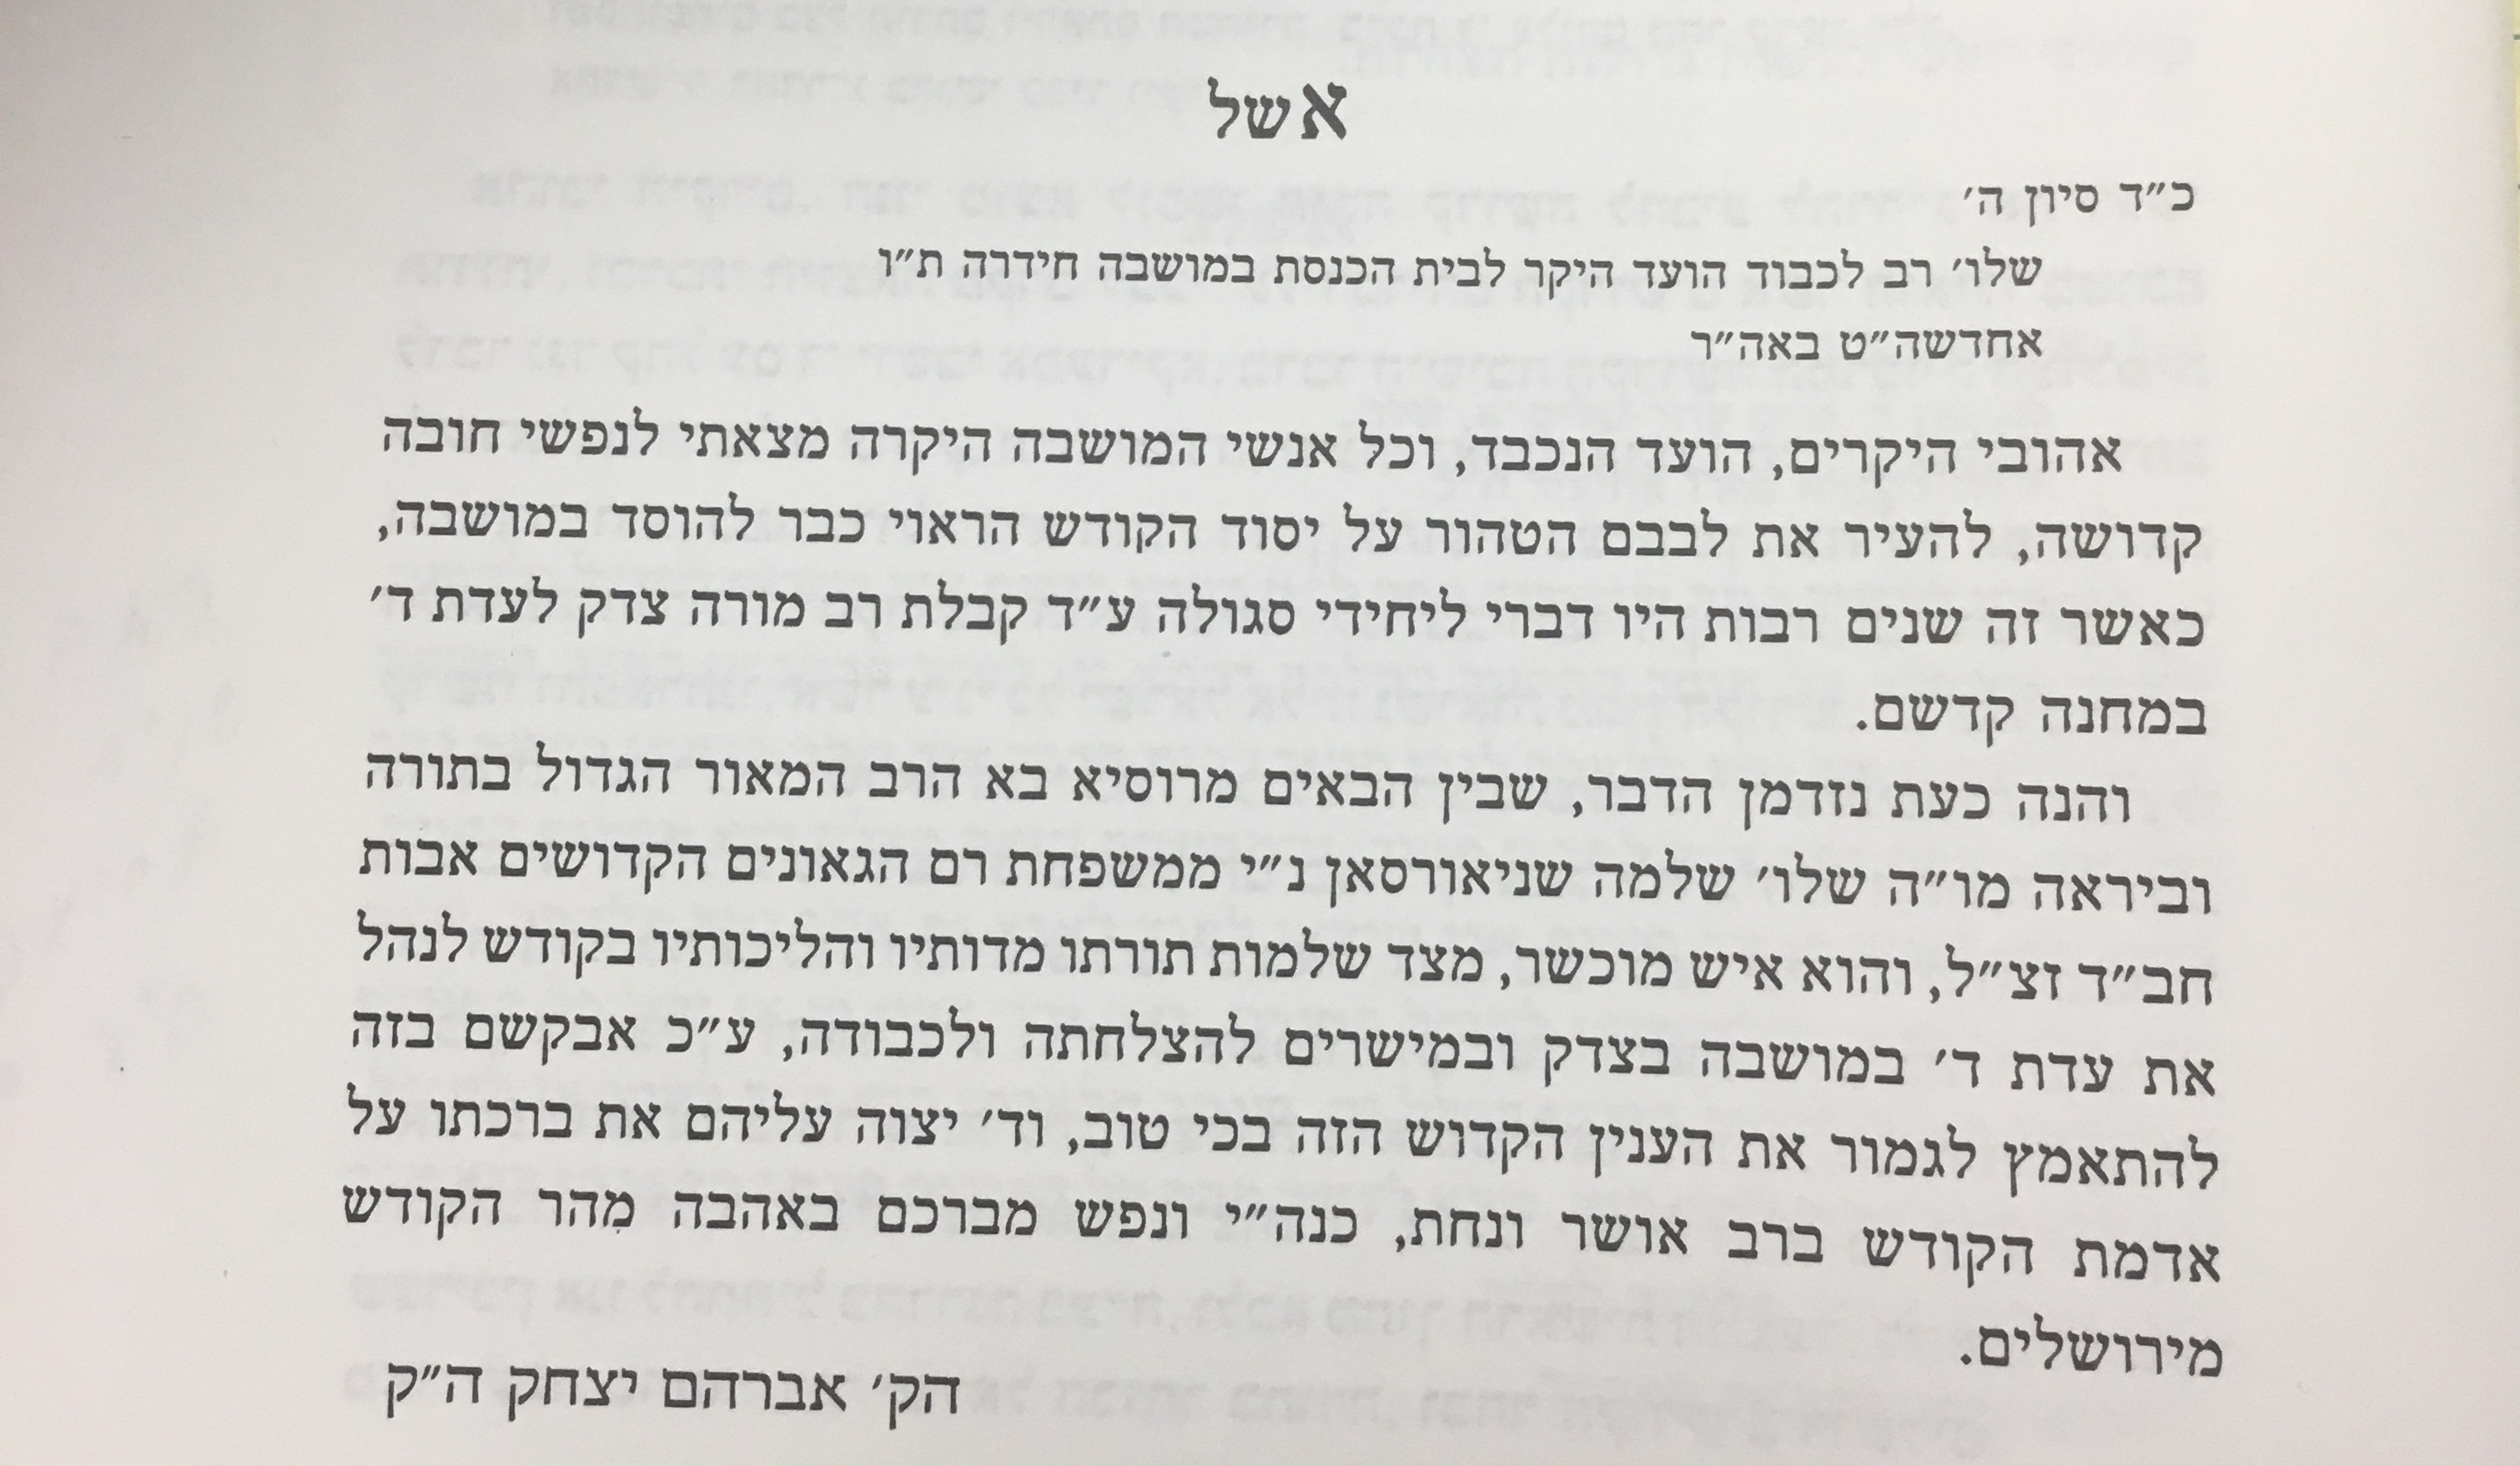 Letter of Rav Kook to the Community of Haderah imploring them to accept as their Rabbi, Sholom Shelomo Schneerson, recently arrived from Russia. Rabbi Schneerson, son-in-law of Rabbi David Zevi (Radatz) Hen of Tchernigov, was the paternal uncle of Rabbi Menachem Mendel Schneerson of Lubavitch-Brooklyn. Unfortunately, Rabbi S.S. Schneerson died not long thereafter. His daughter, Zelda, would grow up to be a celebrated Hebrew poet. > Date: 24 Sivan, [568]5/ 1925 Source : Igrot ha-Rayah, vol. 4 (Jerusalem, 1984), Letter 1330 (p. 251)